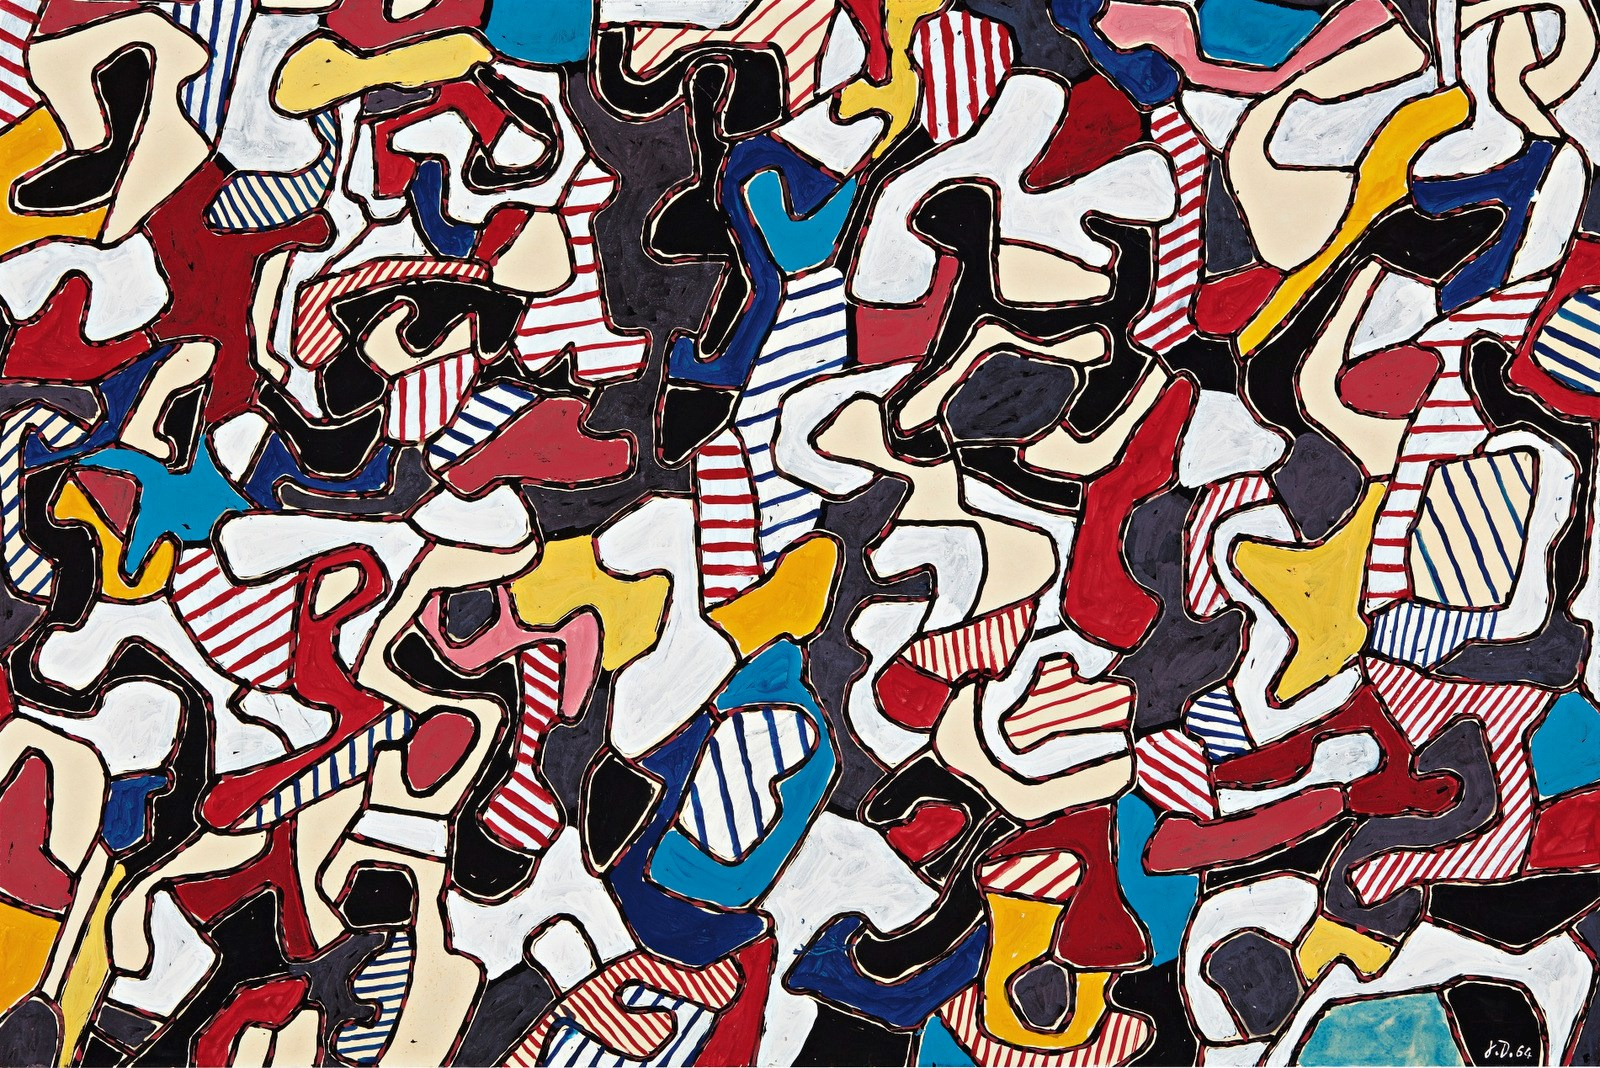 Visual Complexity of Dubuffet's 'Conjectures' at Sotheby's Contemporary Sale